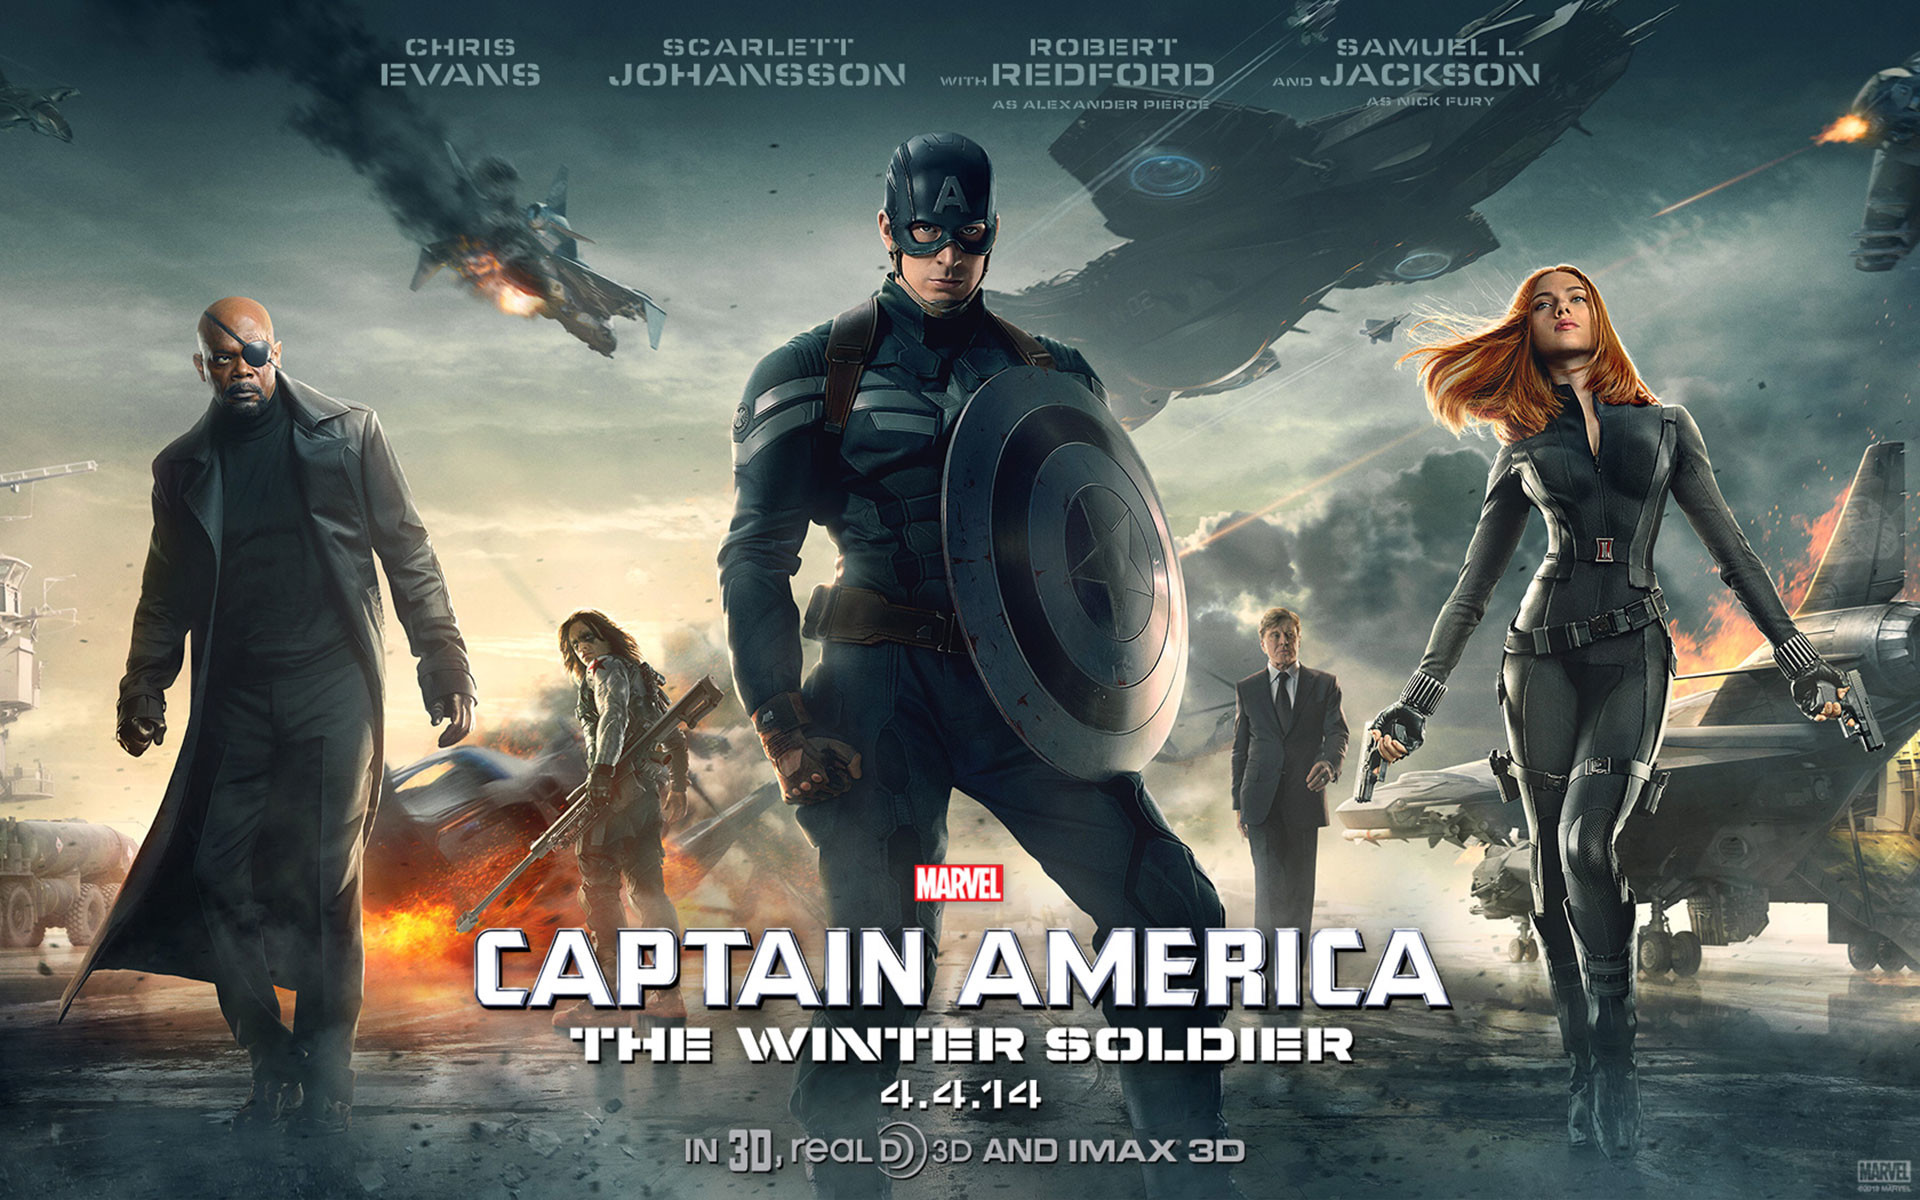 Captain America The Winter Soldier Wallpapers HD Wallpapers   HD Wallpapers    Pinterest   Capt america, Hd wallpaper and Wallpaper